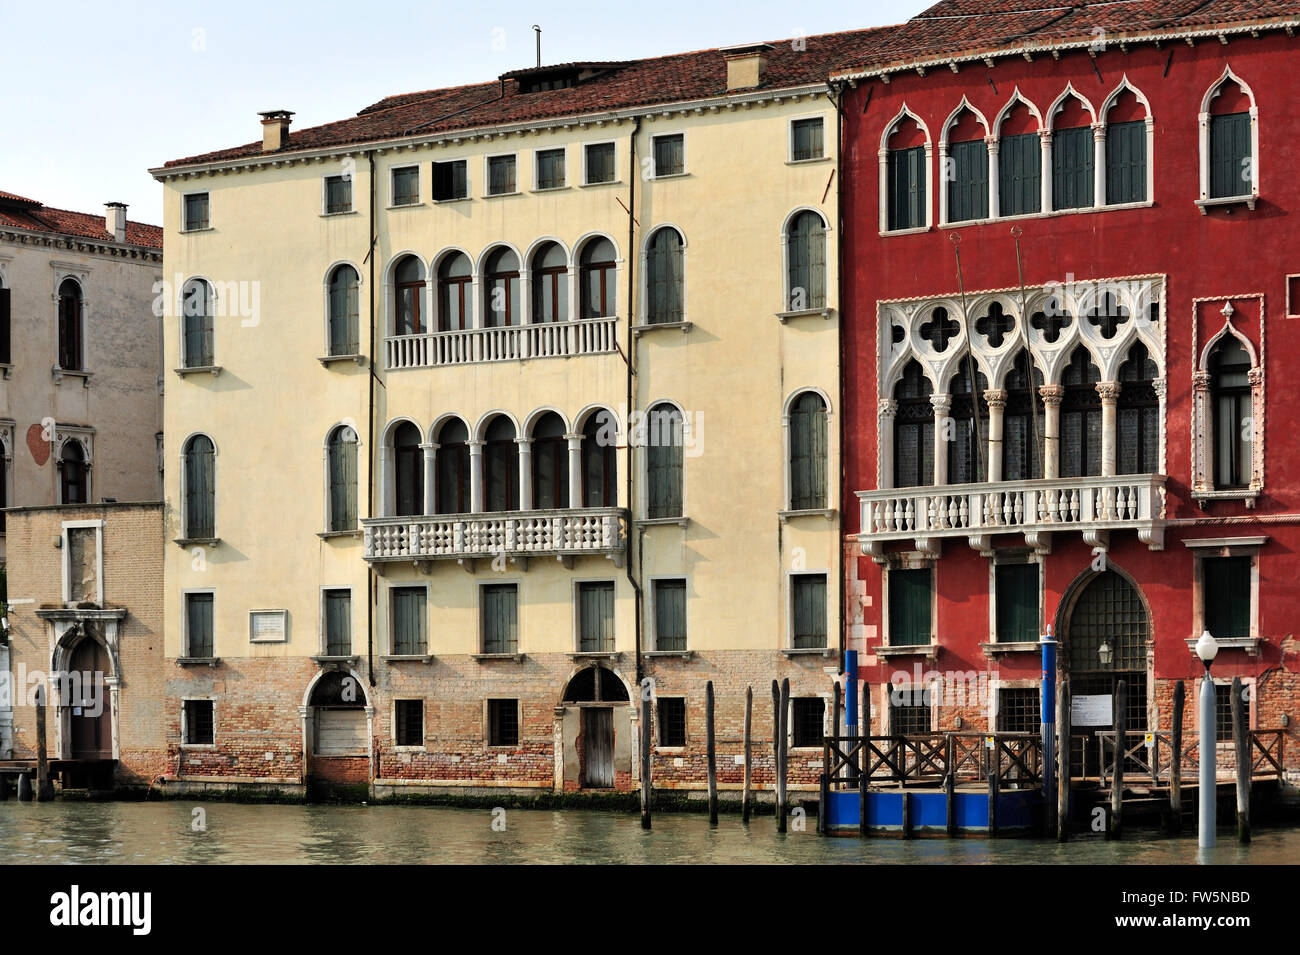 Palazzo Marcello, Venice. The birthplace and family home, on the Grand Canal in the Canareggio district, of Venetian - Stock Image